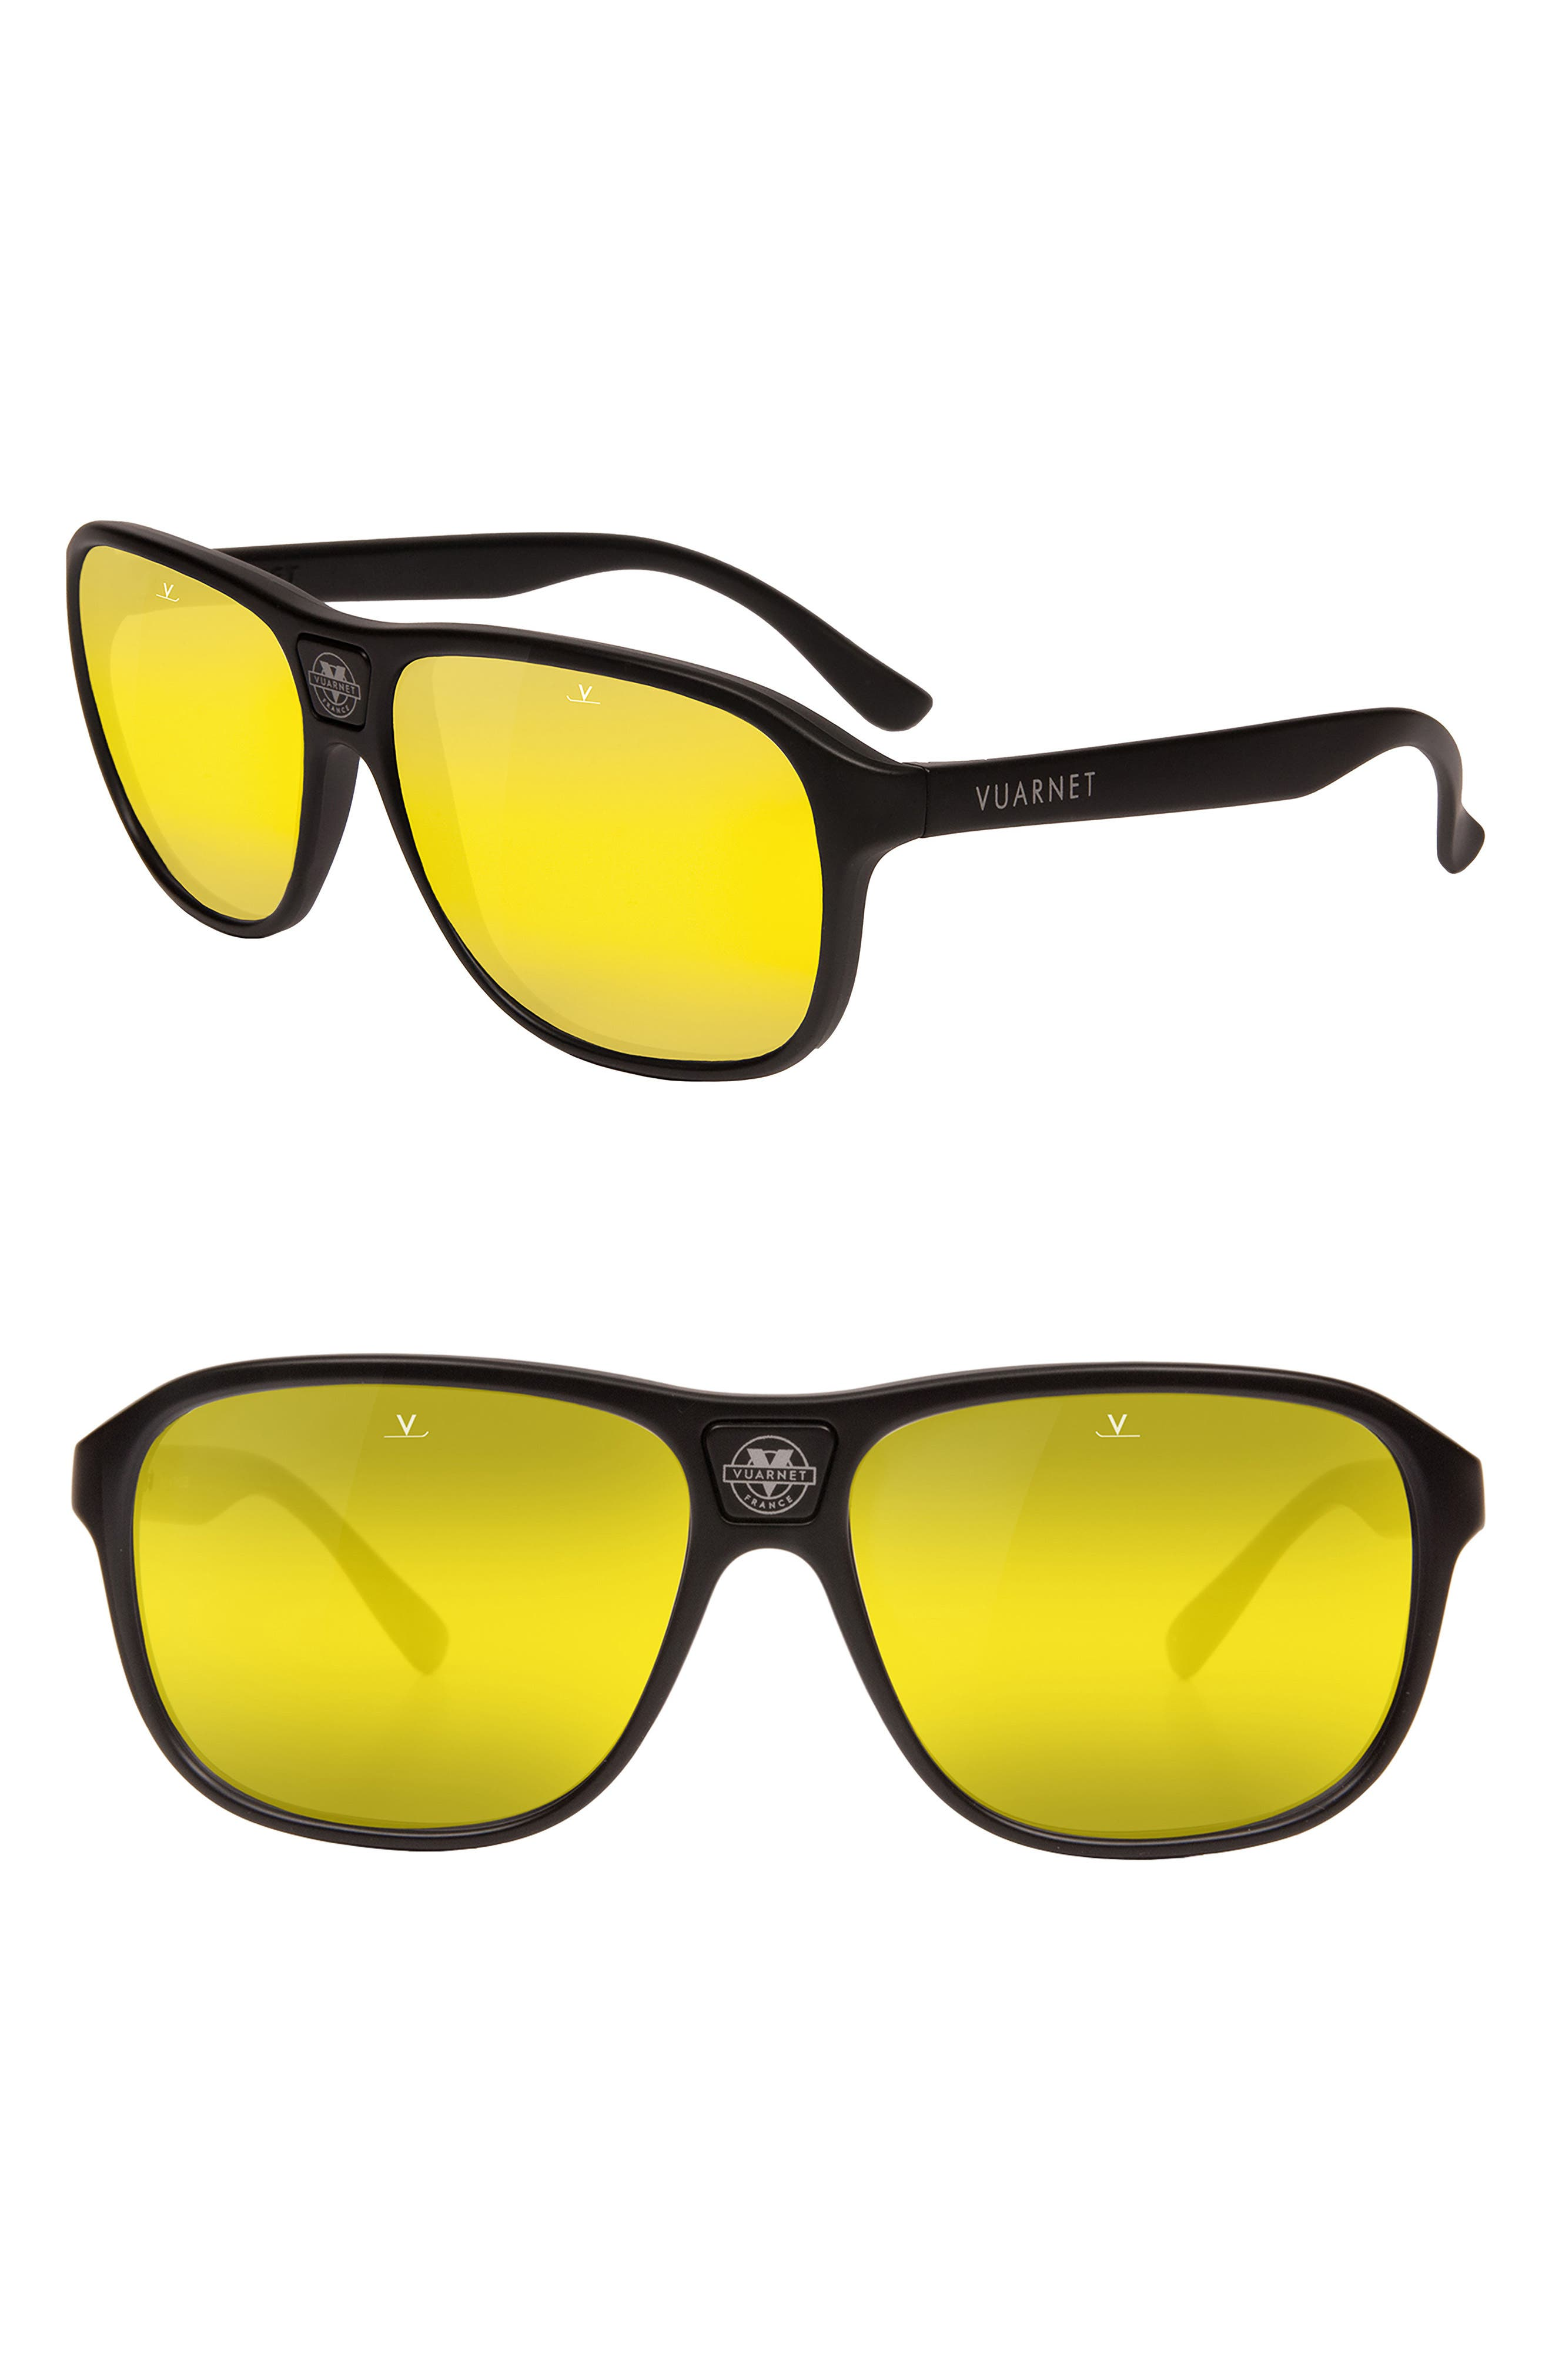 Legends 03 56mm Sunglasses,                         Main,                         color, Nightlynx